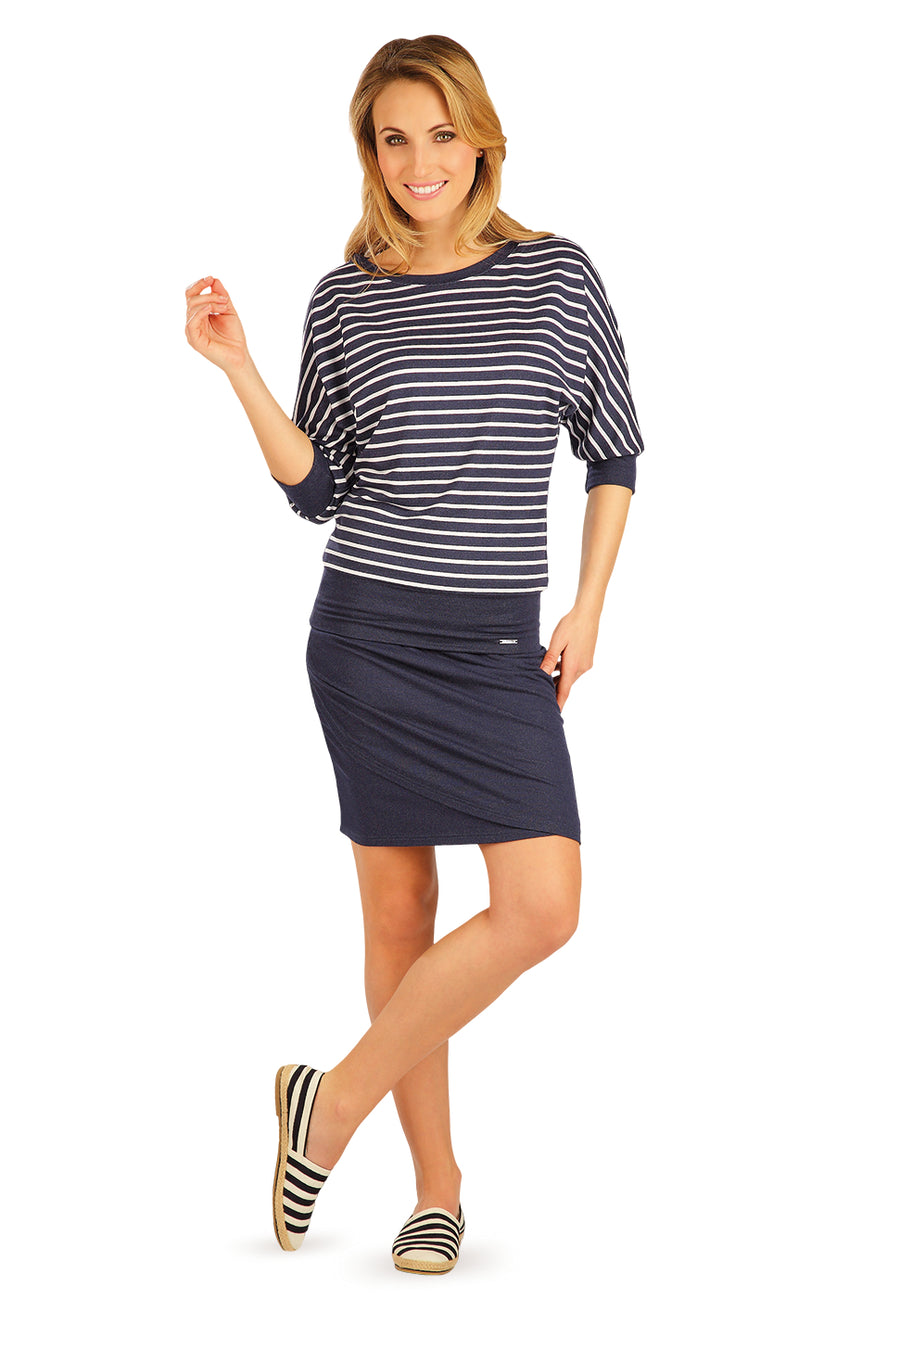 Women's Jumper With Navy Stripes